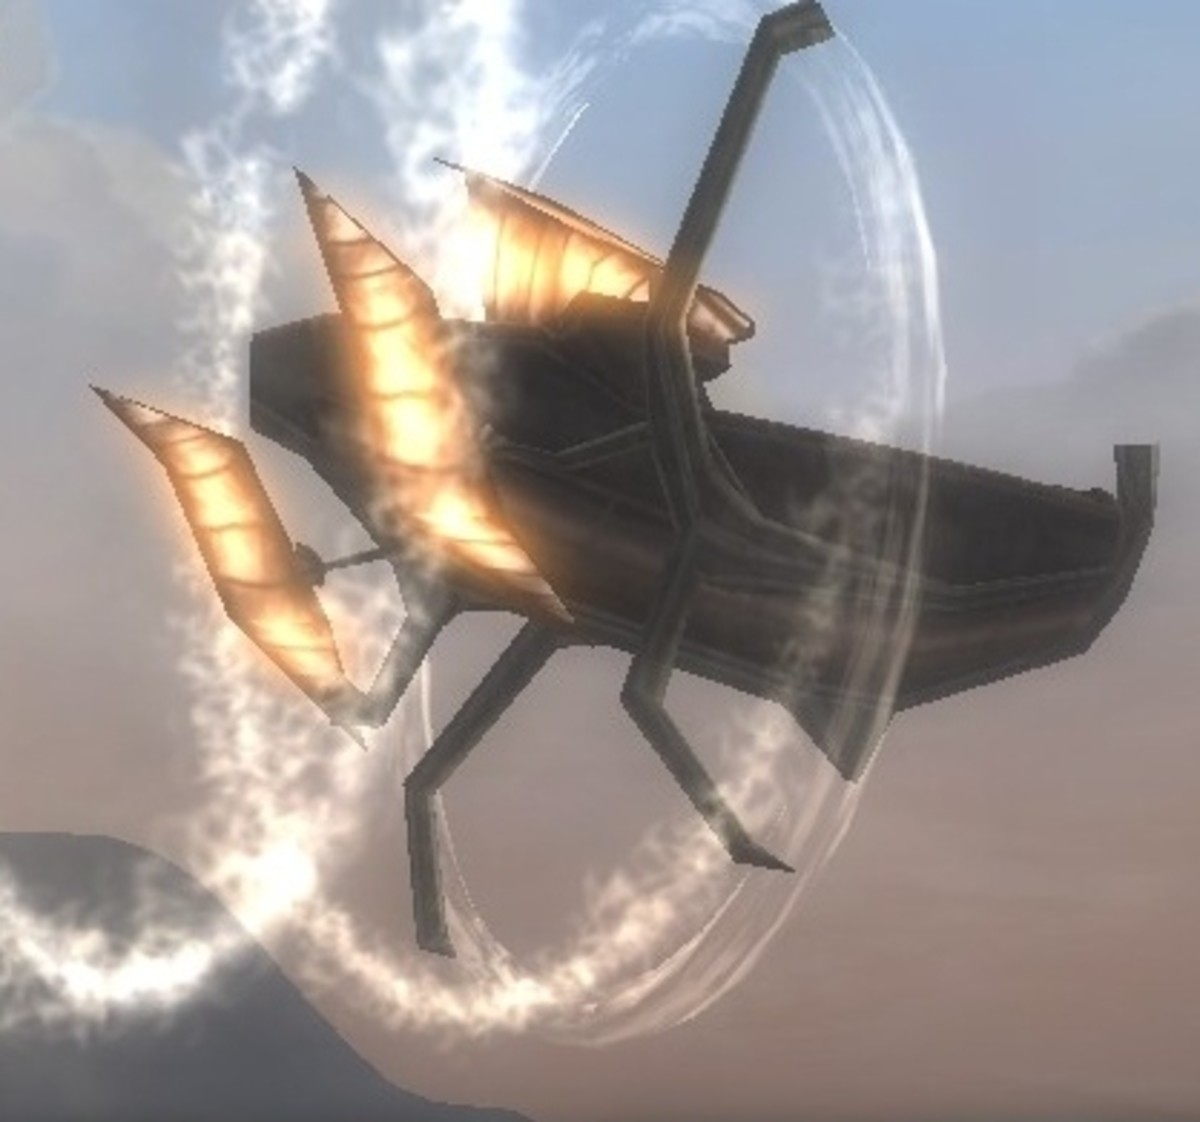 An added luxury of guild membership is access to the guild's airship.